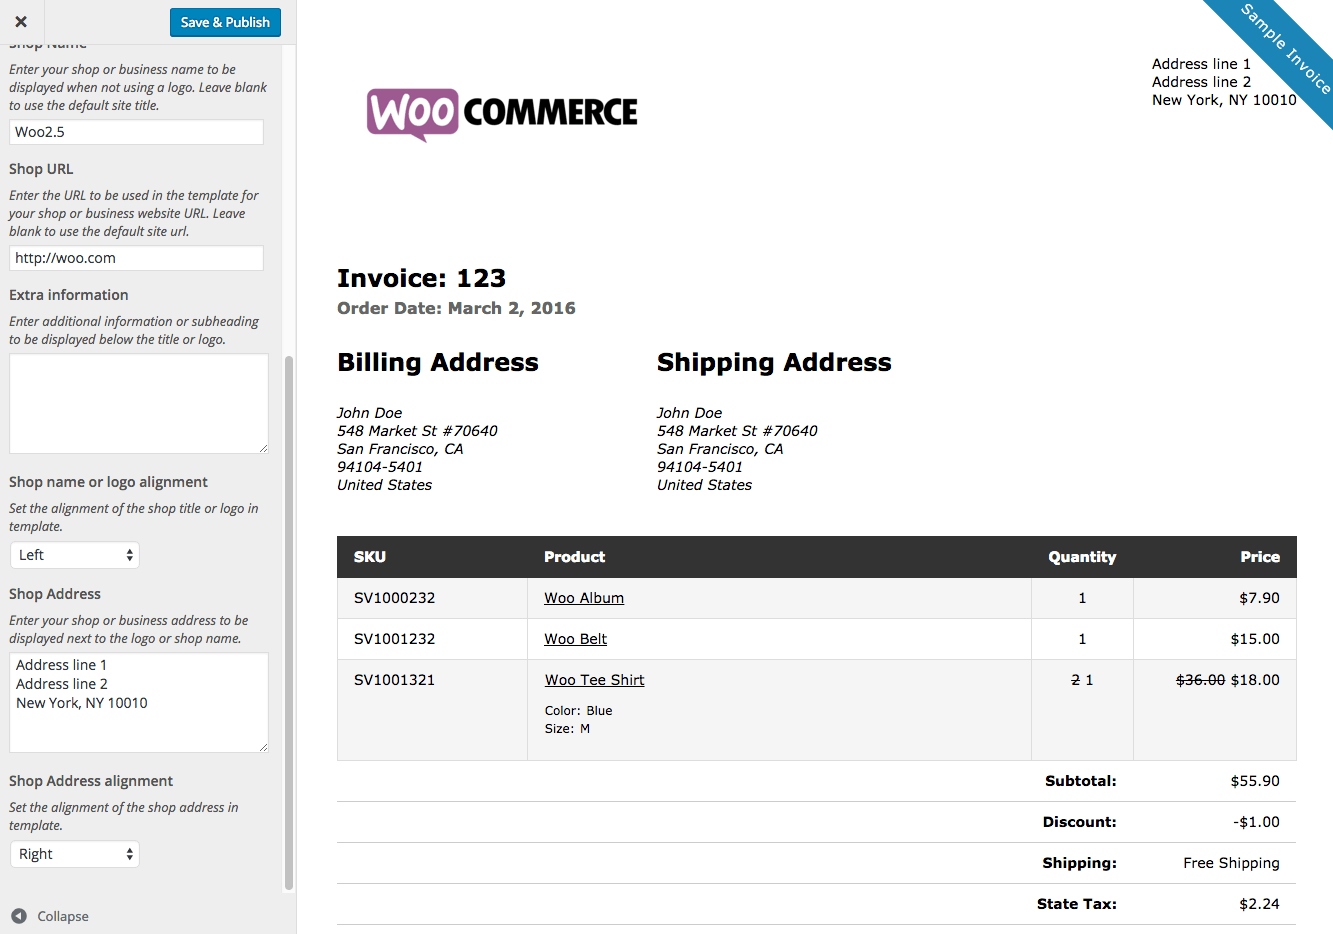 Musclebuildingtipsus  Scenic Woocommerce Print Invoices Amp Packing Lists  Woocommerce Docs With Lovely Woocommerce Print Invoices  Packing Lists Customizer With Easy On The Eye Invoice Advance Also Contractor Invoice Sample In Addition Invoice Billing And Blank Invoice Template For Microsoft Word As Well As Invoice Dictionary Additionally Invoice Car From Docswoocommercecom With Musclebuildingtipsus  Lovely Woocommerce Print Invoices Amp Packing Lists  Woocommerce Docs With Easy On The Eye Woocommerce Print Invoices  Packing Lists Customizer And Scenic Invoice Advance Also Contractor Invoice Sample In Addition Invoice Billing From Docswoocommercecom